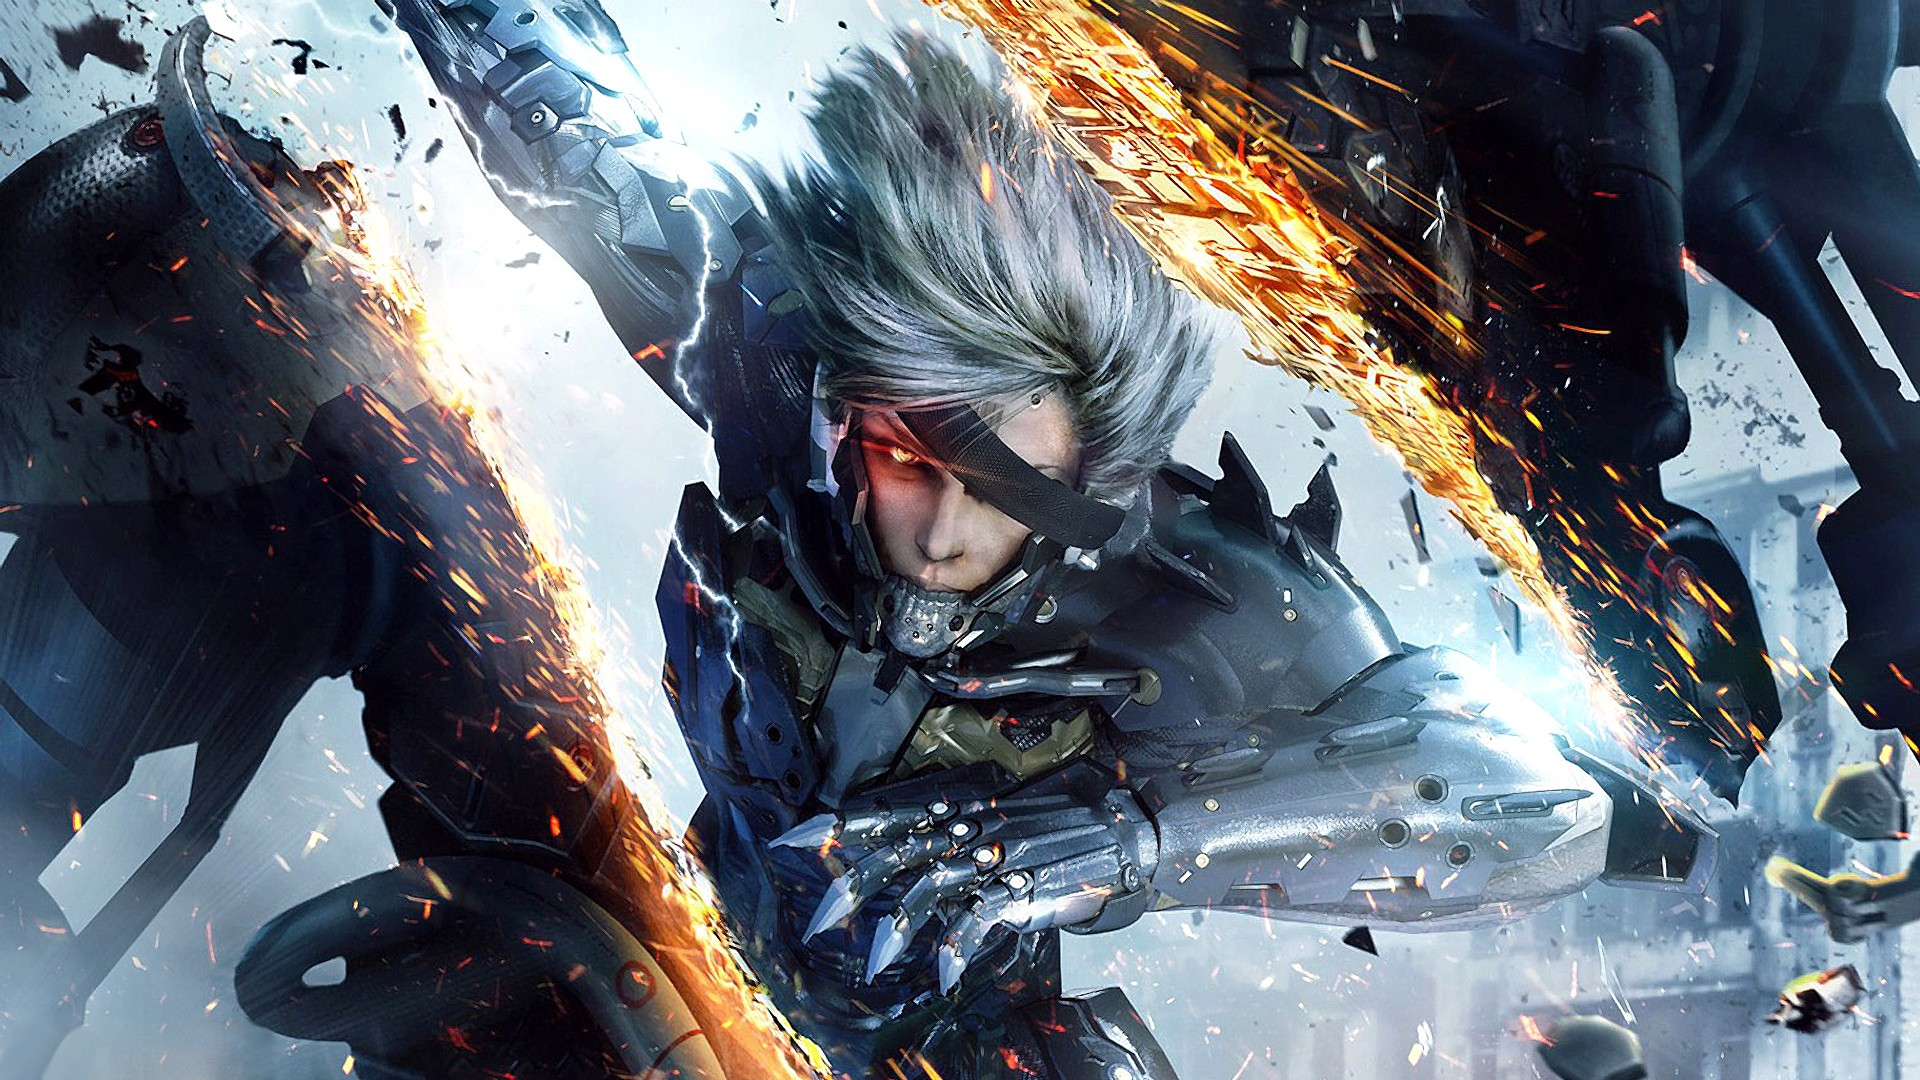 metal gear rising wallpaper A4